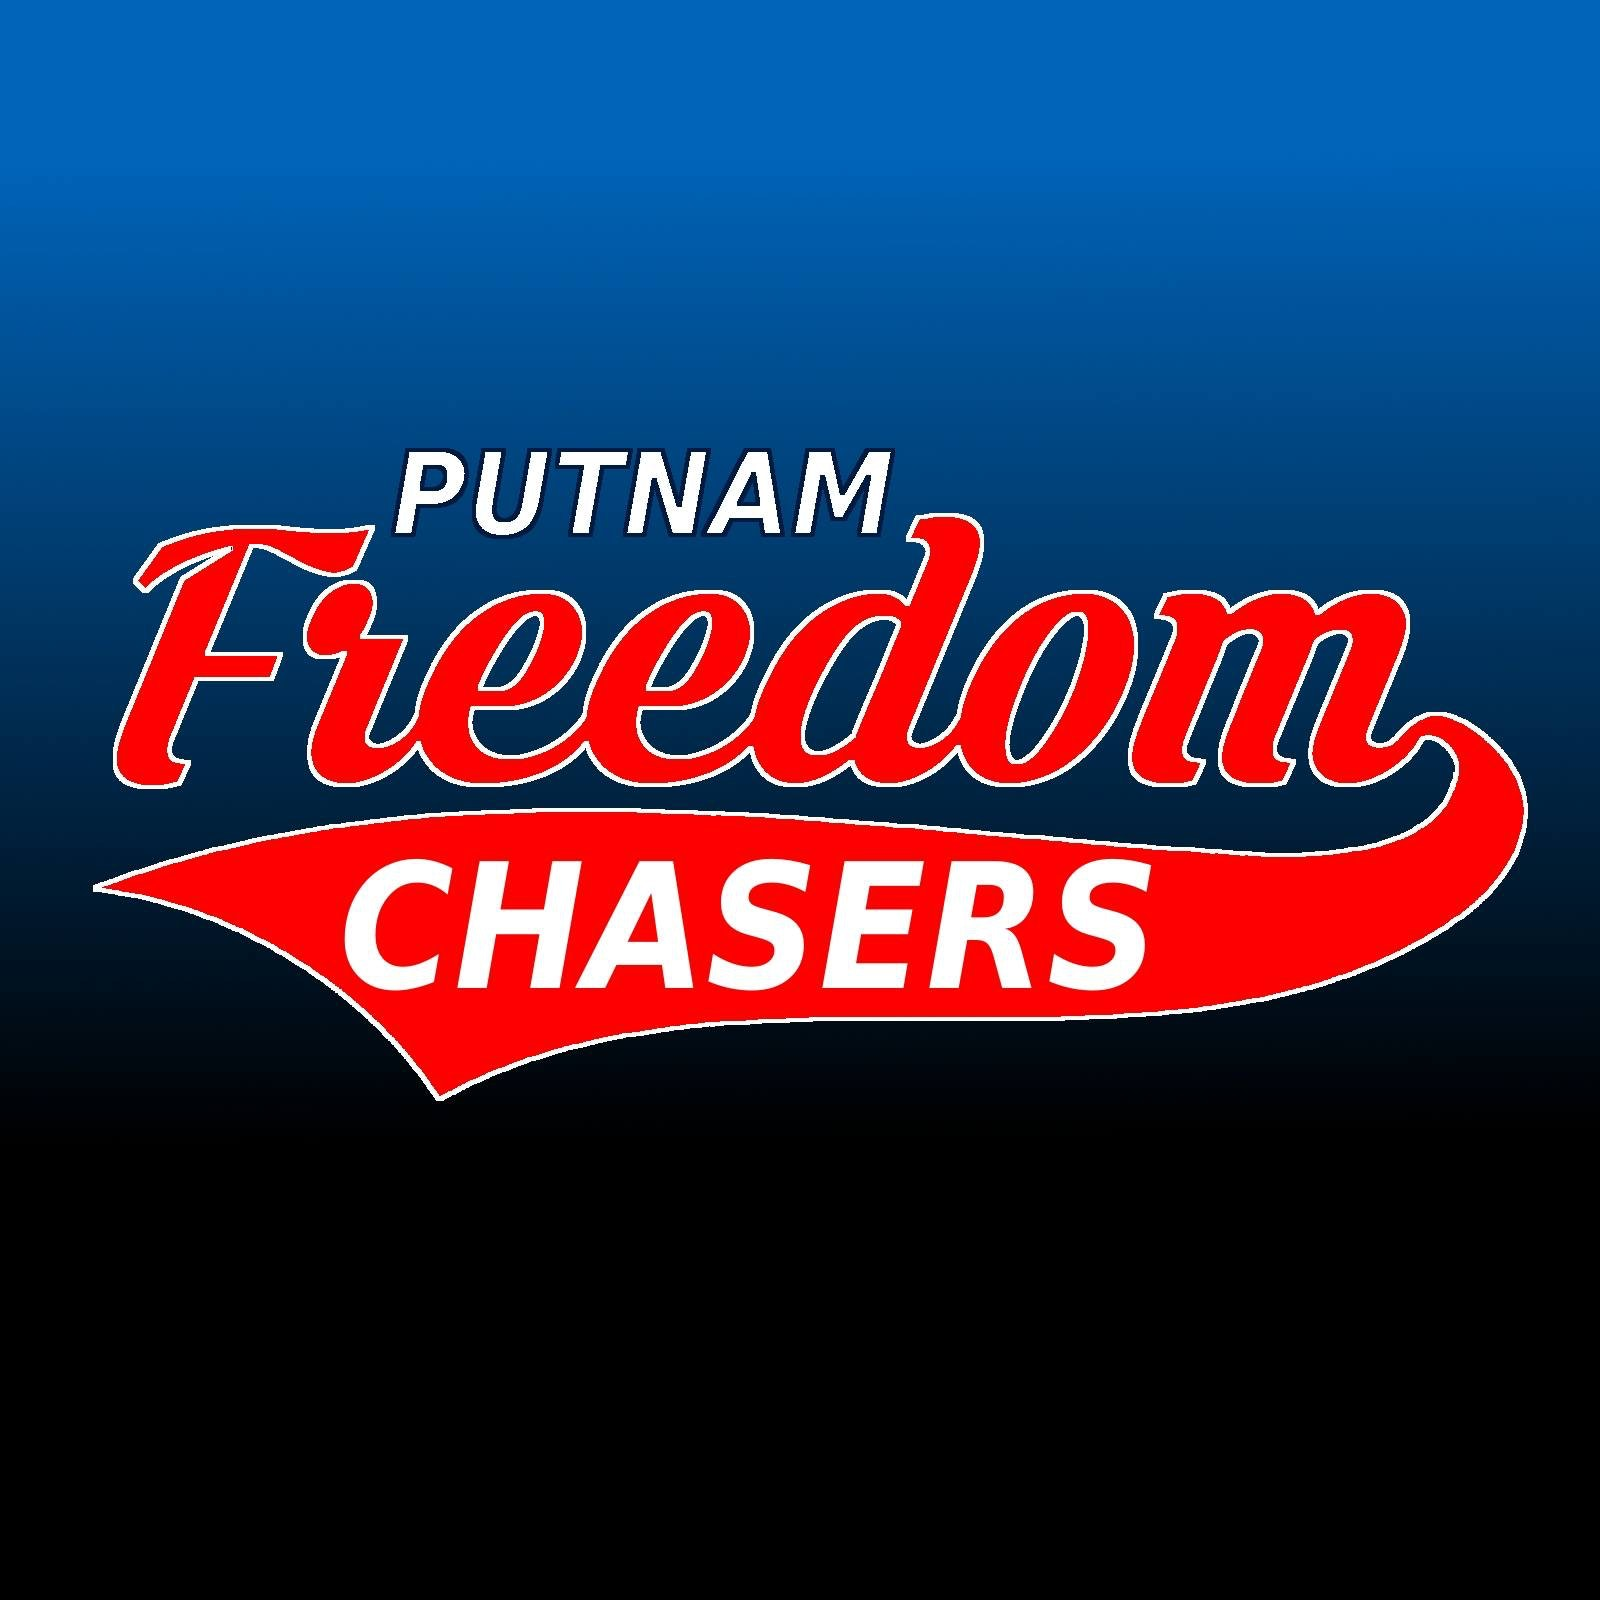 putnam freedom chasers